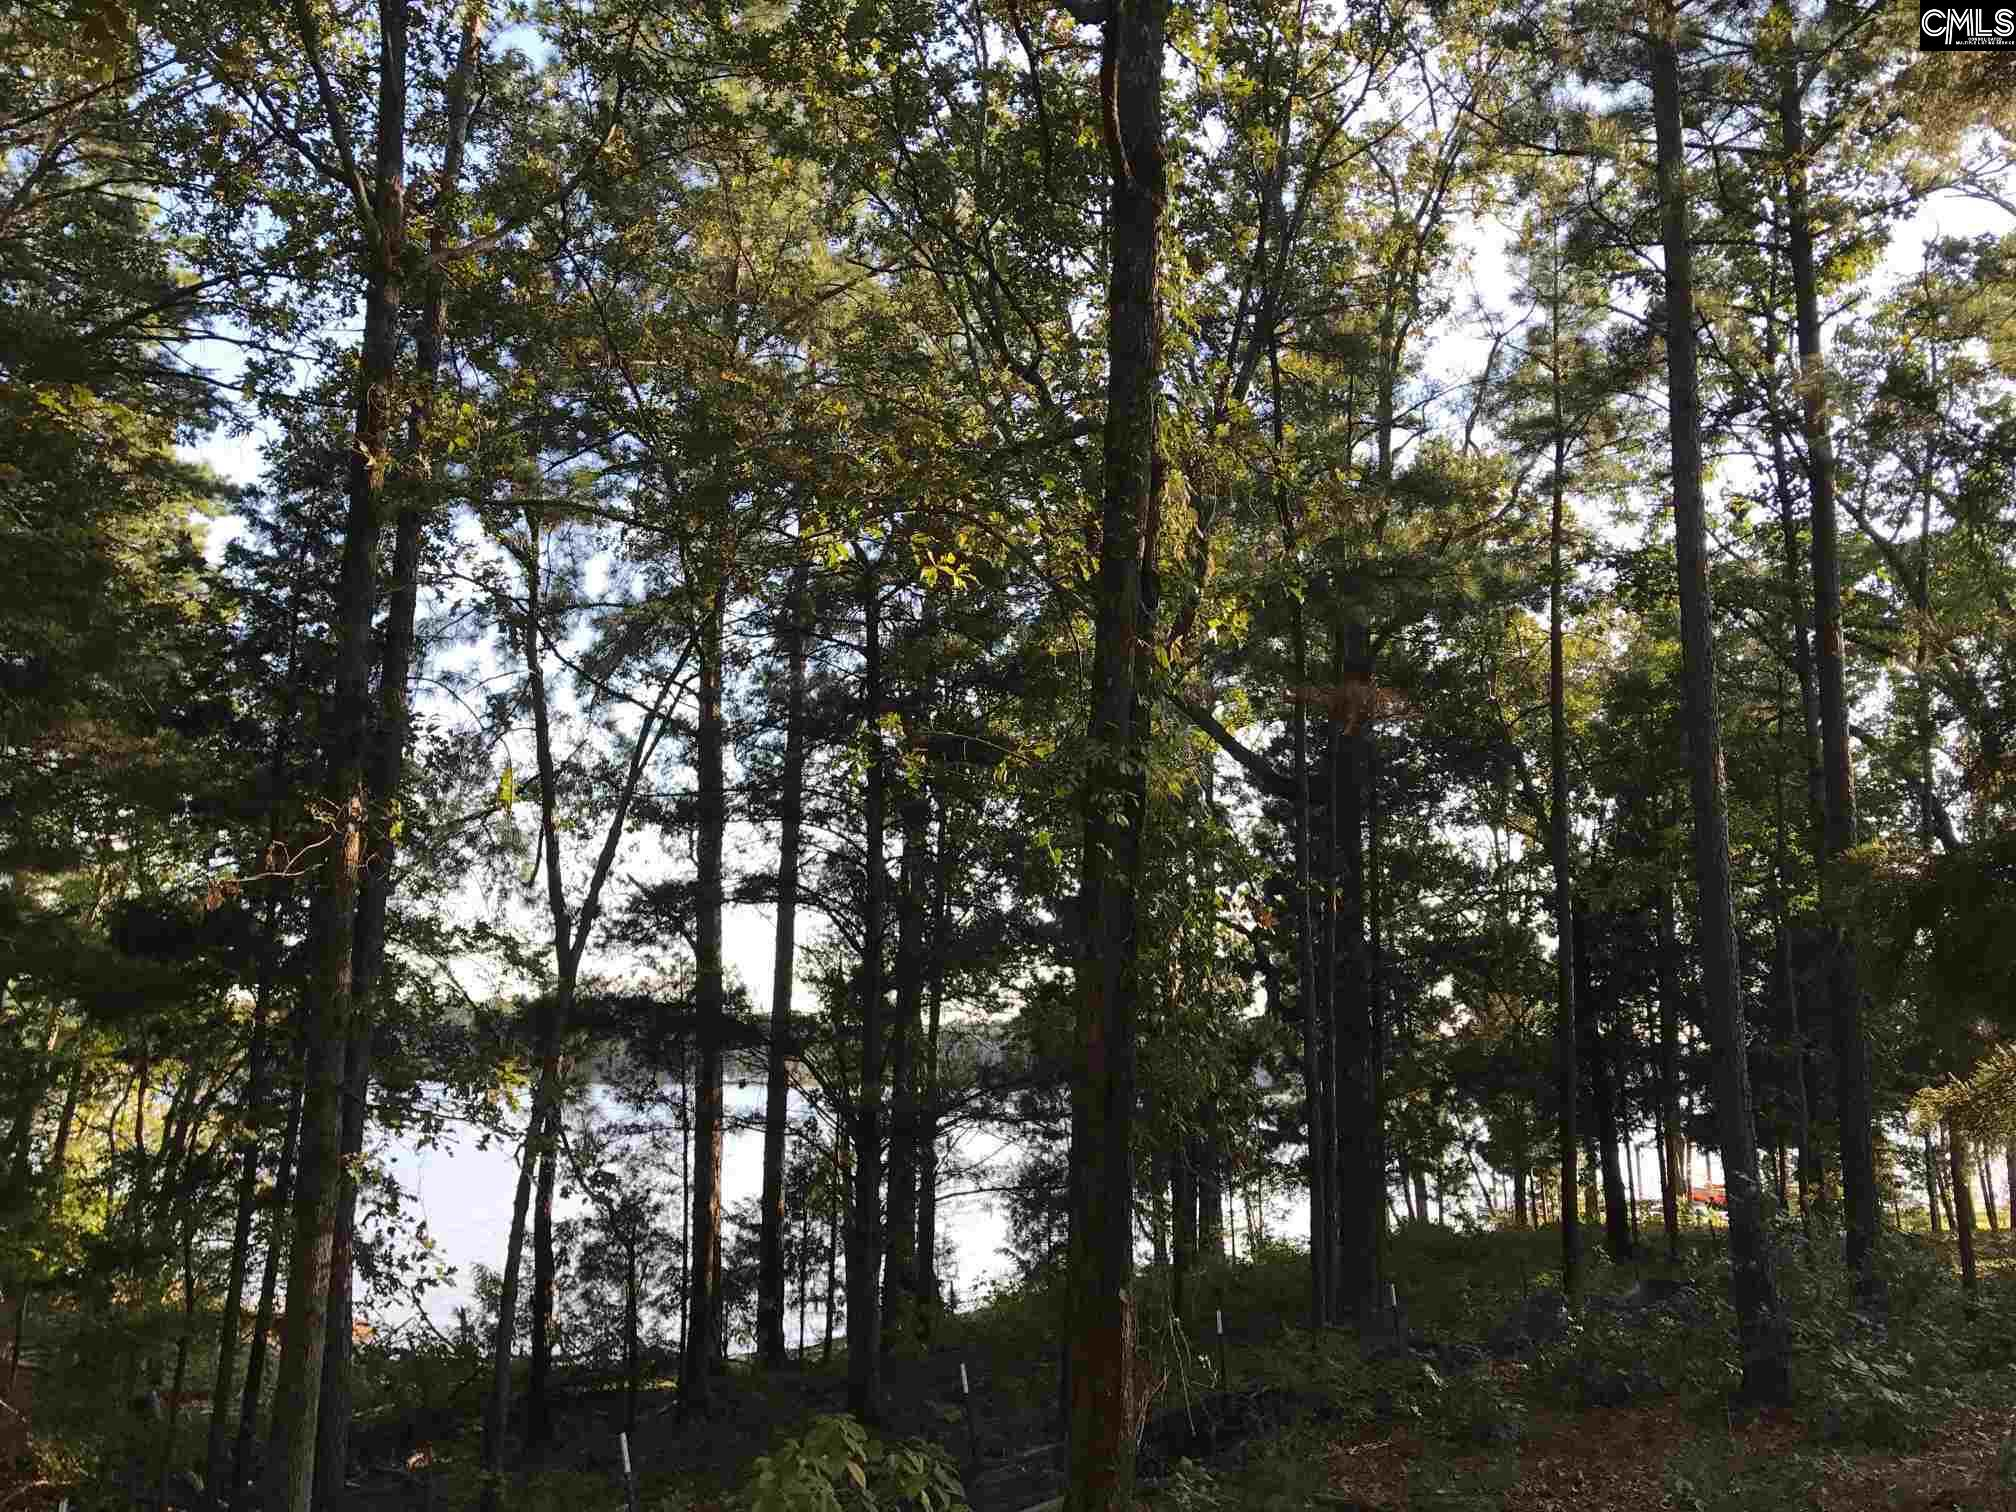 469 Wood Willow #3 Chapin, SC 29036